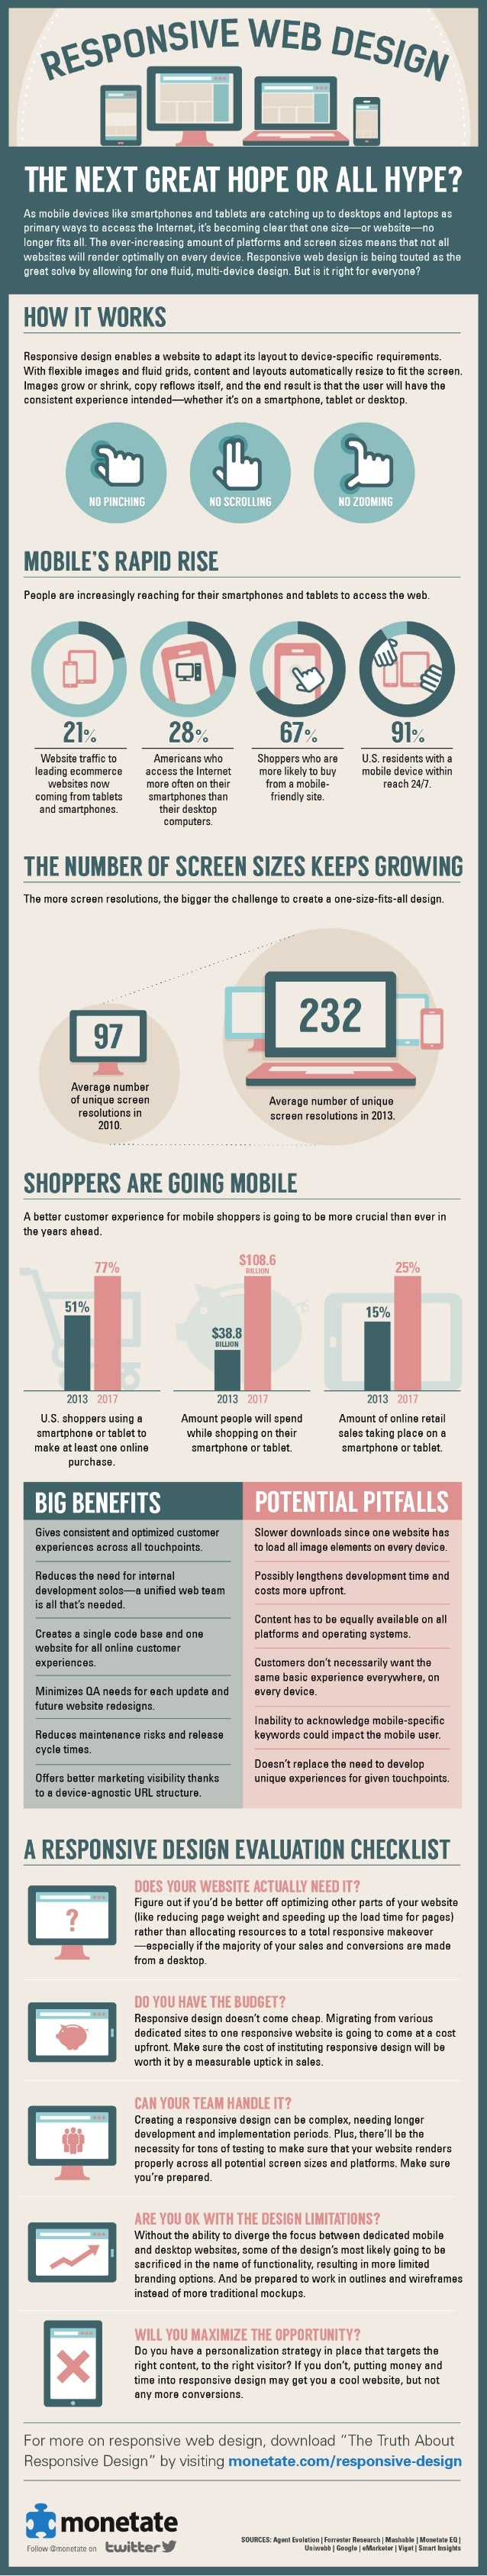 Responsive Design: The Next Great Hope or All Hype?